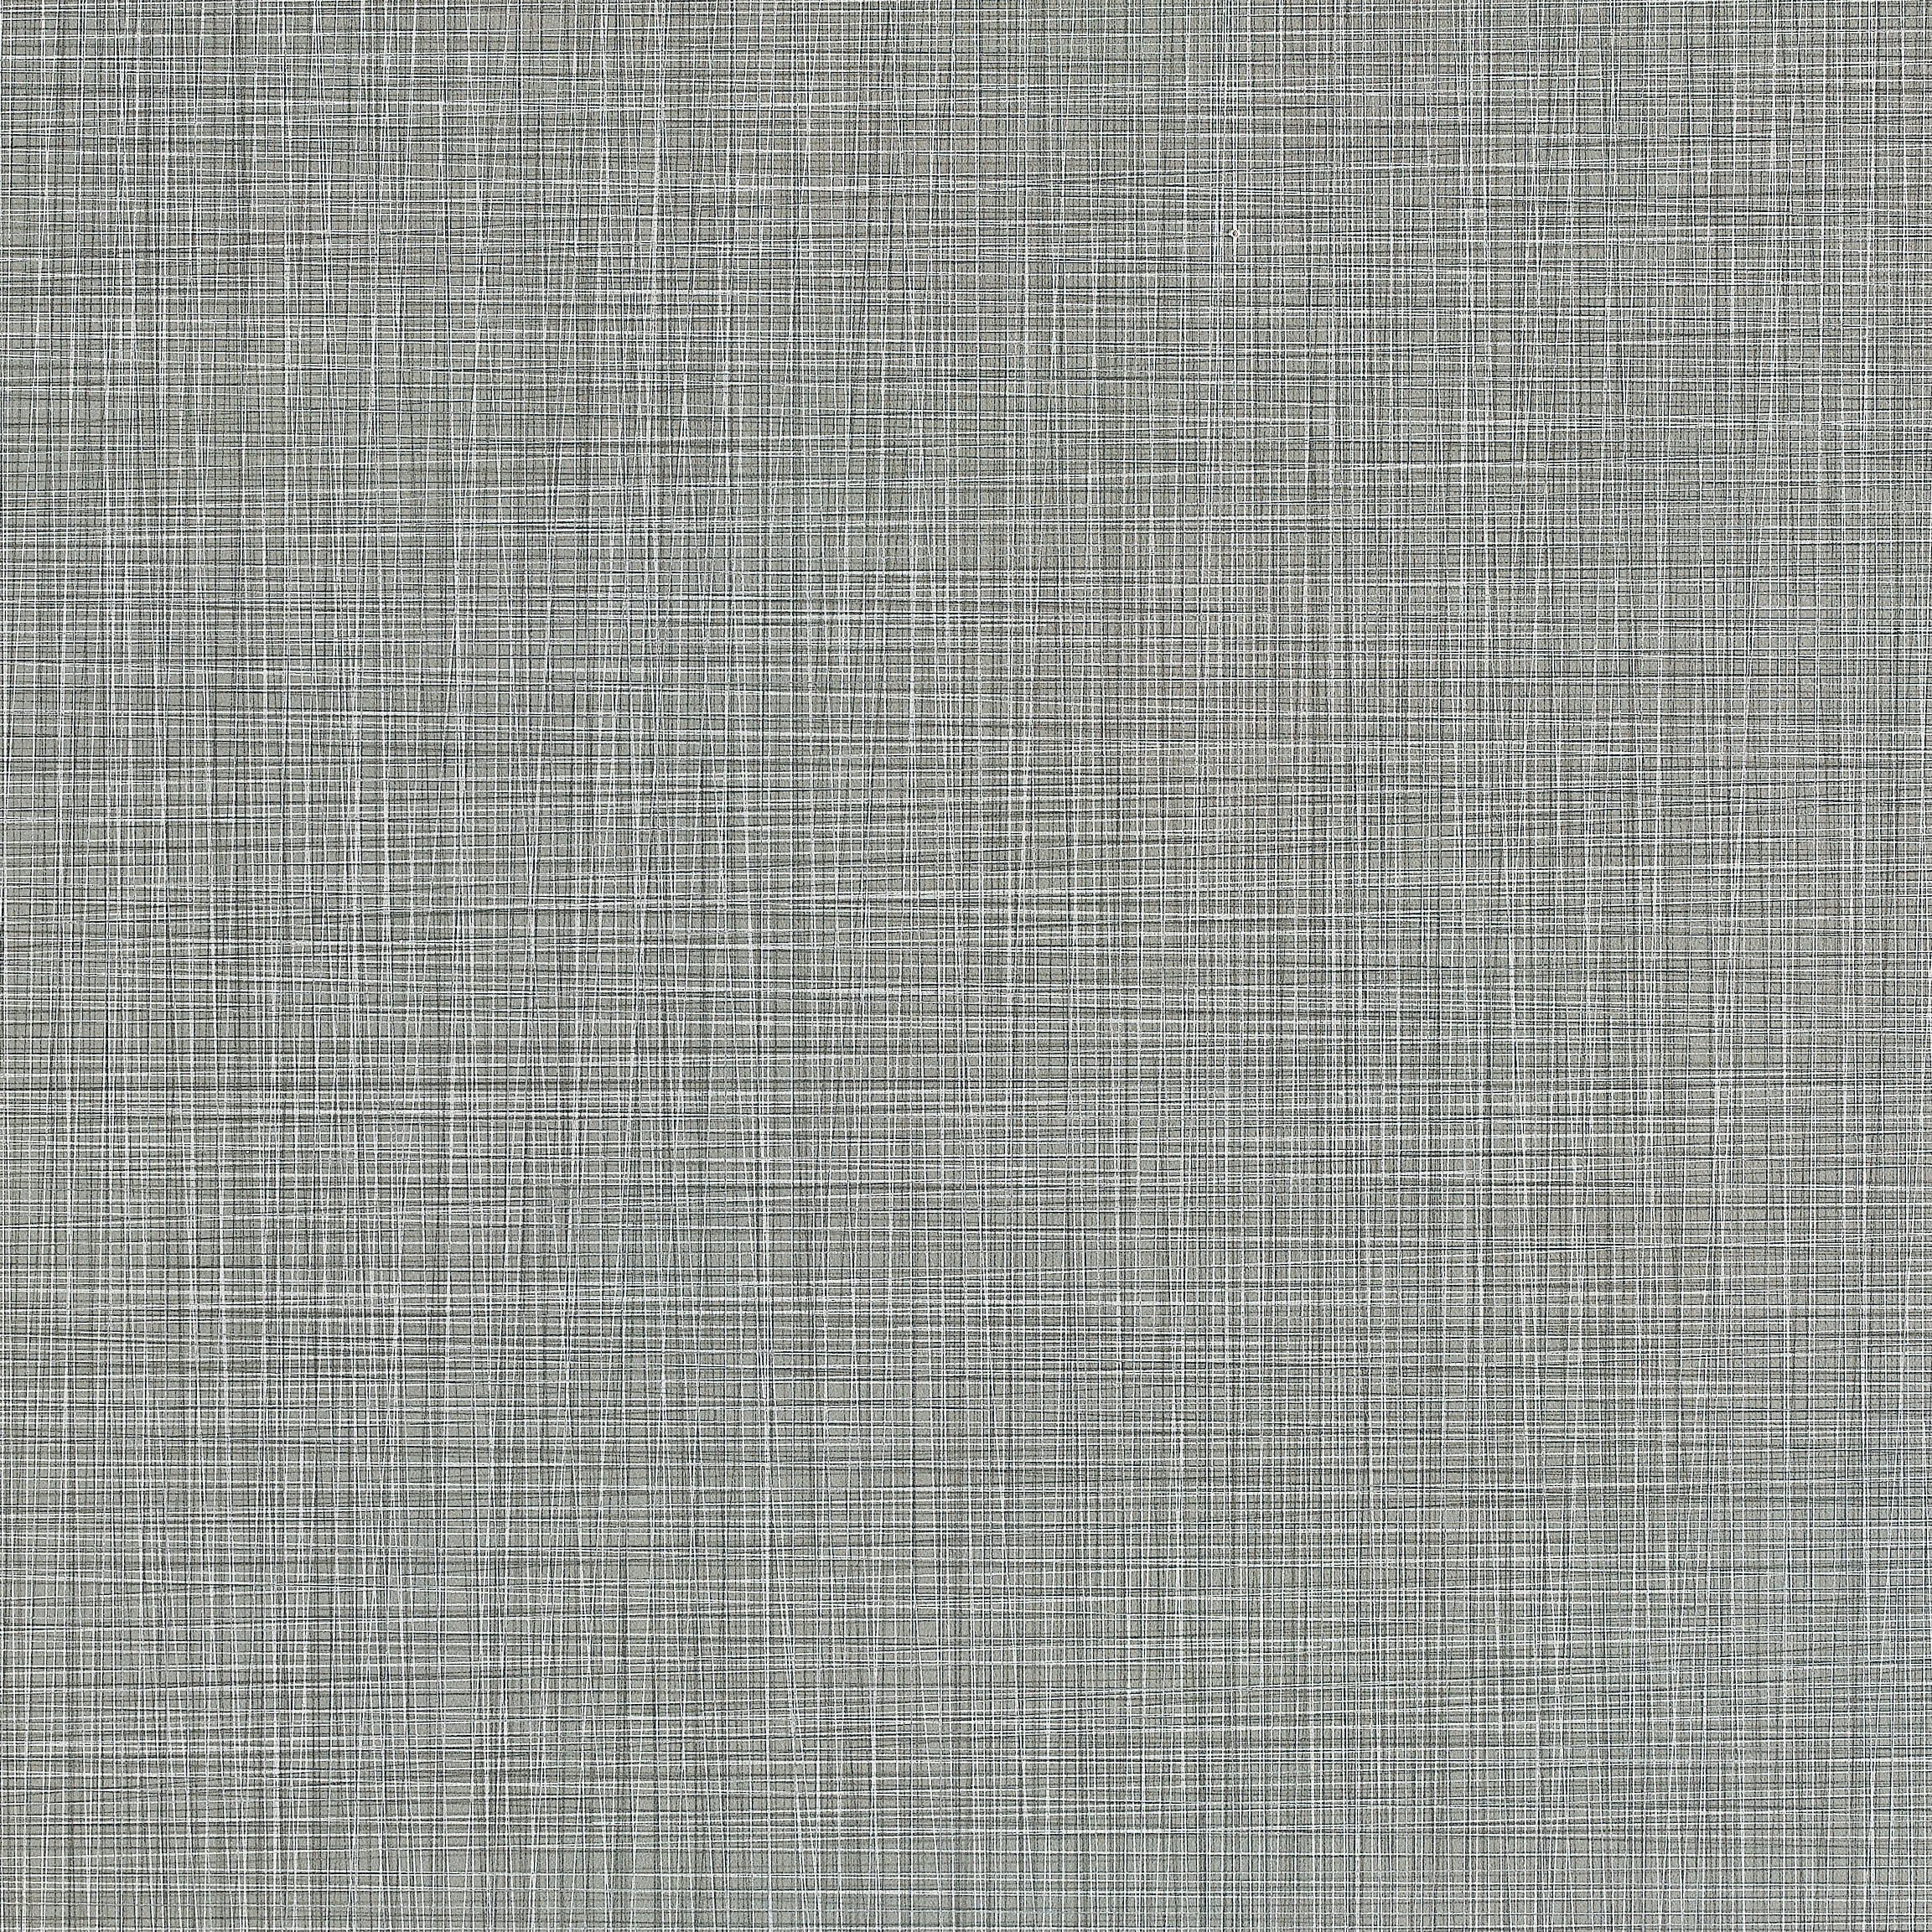 Porcelain Tile | Woven Series - HSLB6001 | by Hospitality Finishes